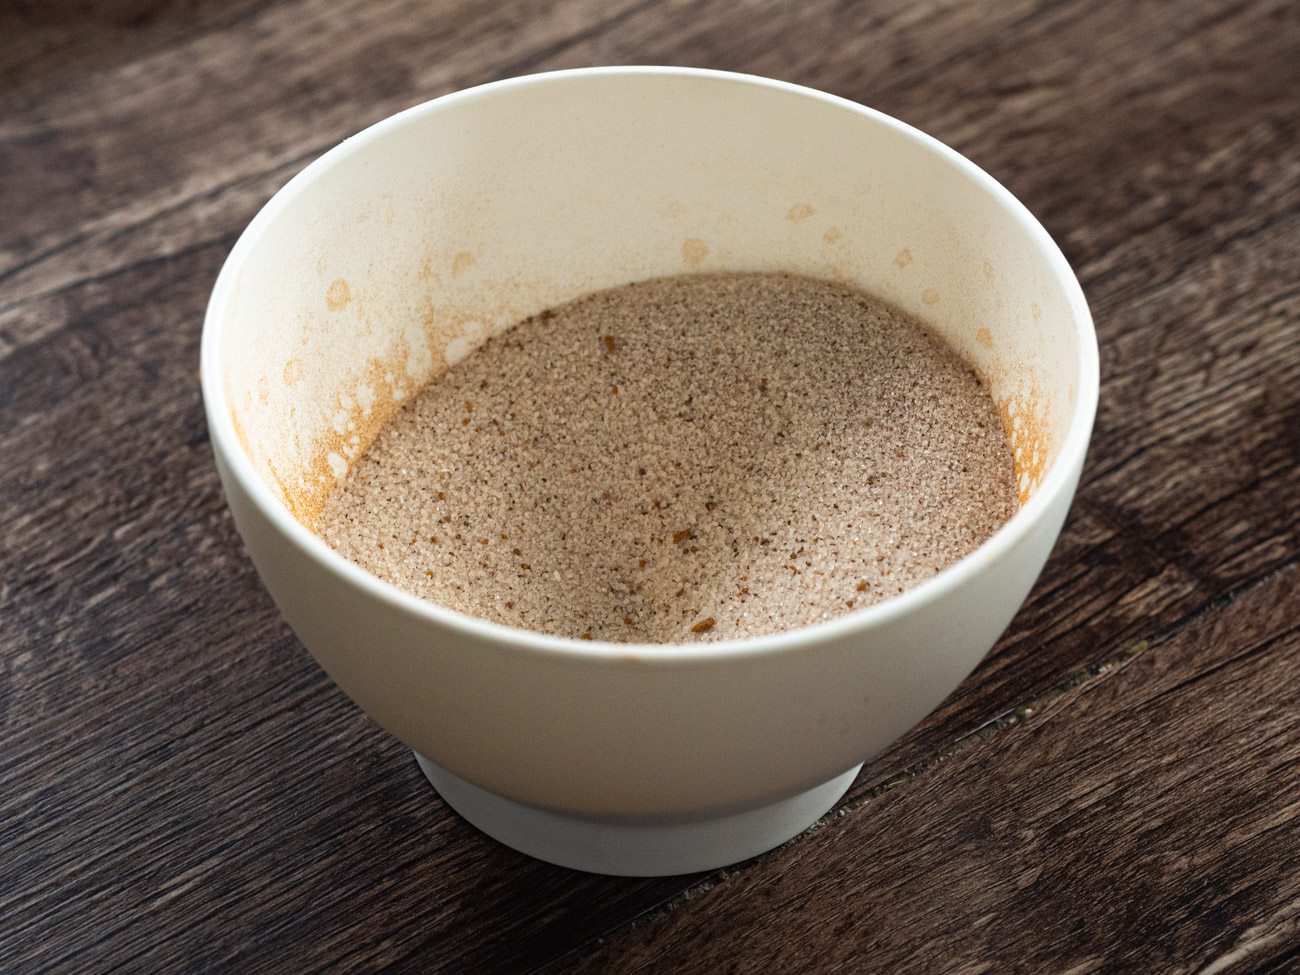 Combine the sugar, cinnamon, and nutmeg in a small bowl. Set aside for later.